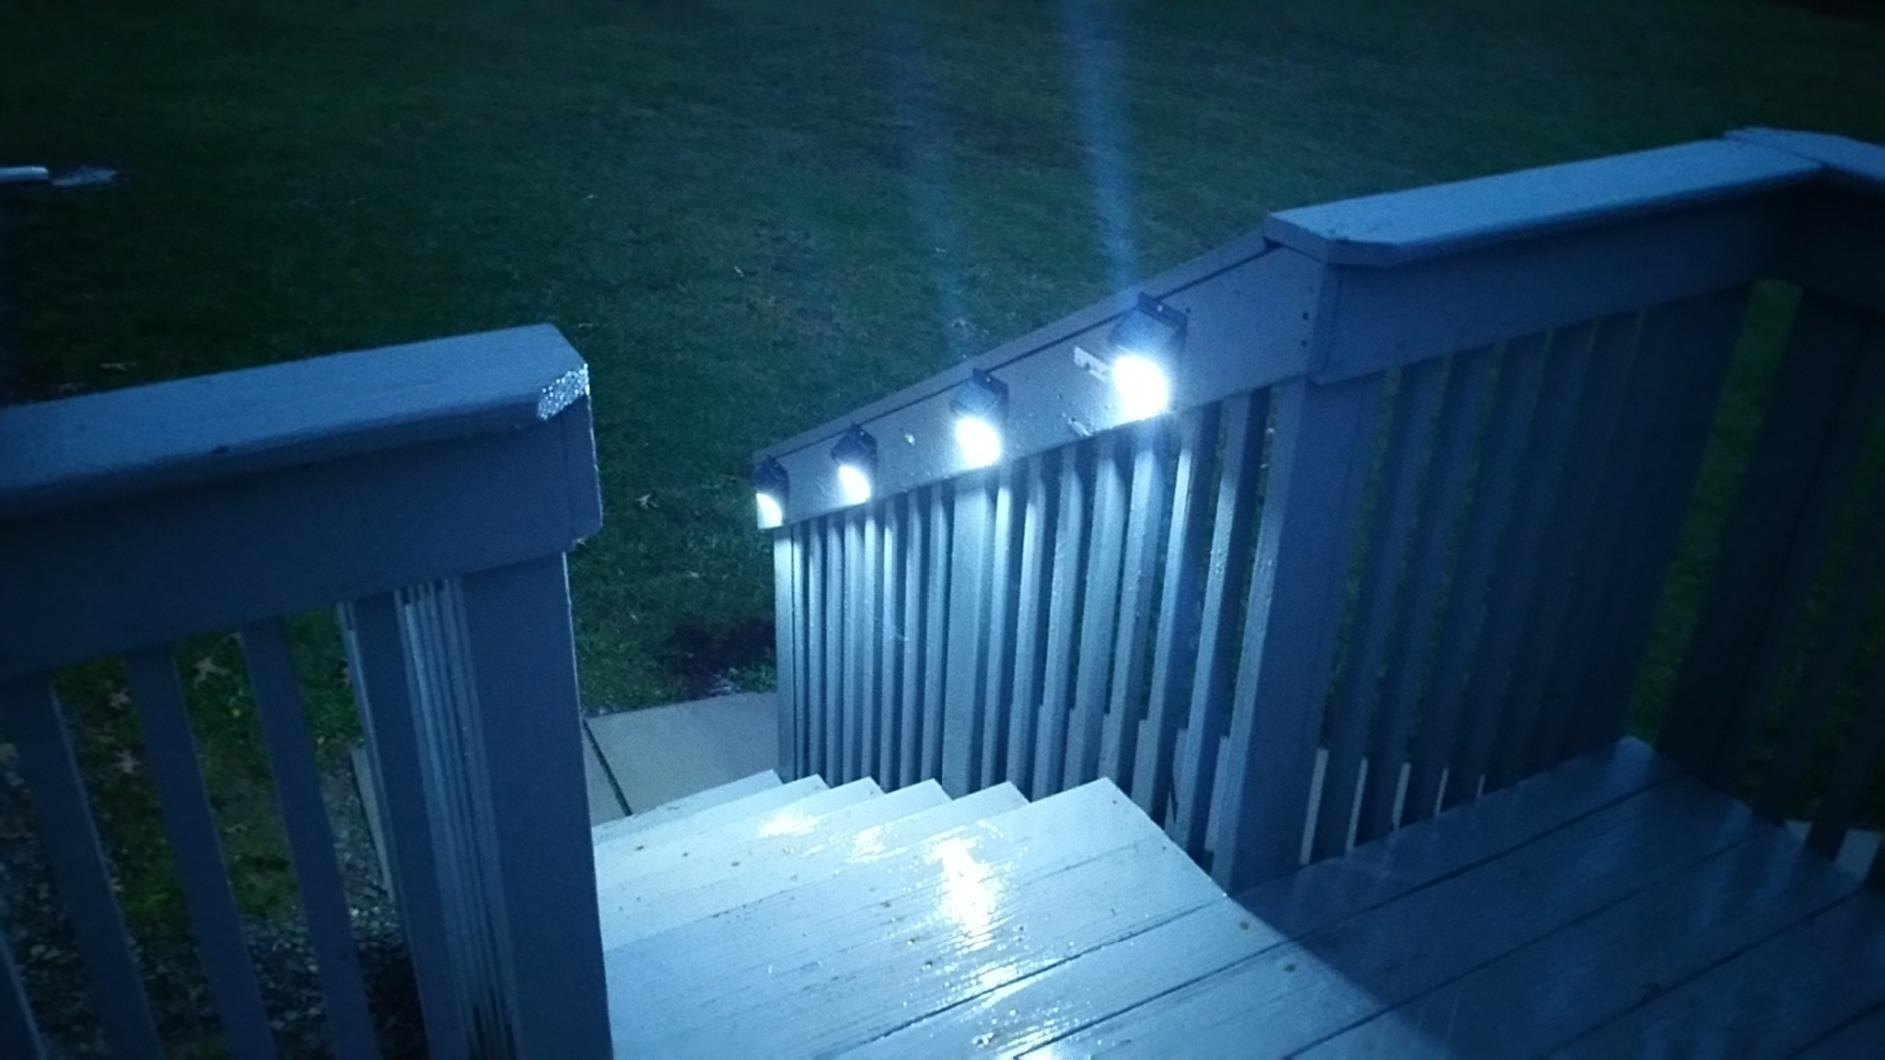 The lights mounted to the side of porch steps and illuminating the stairs